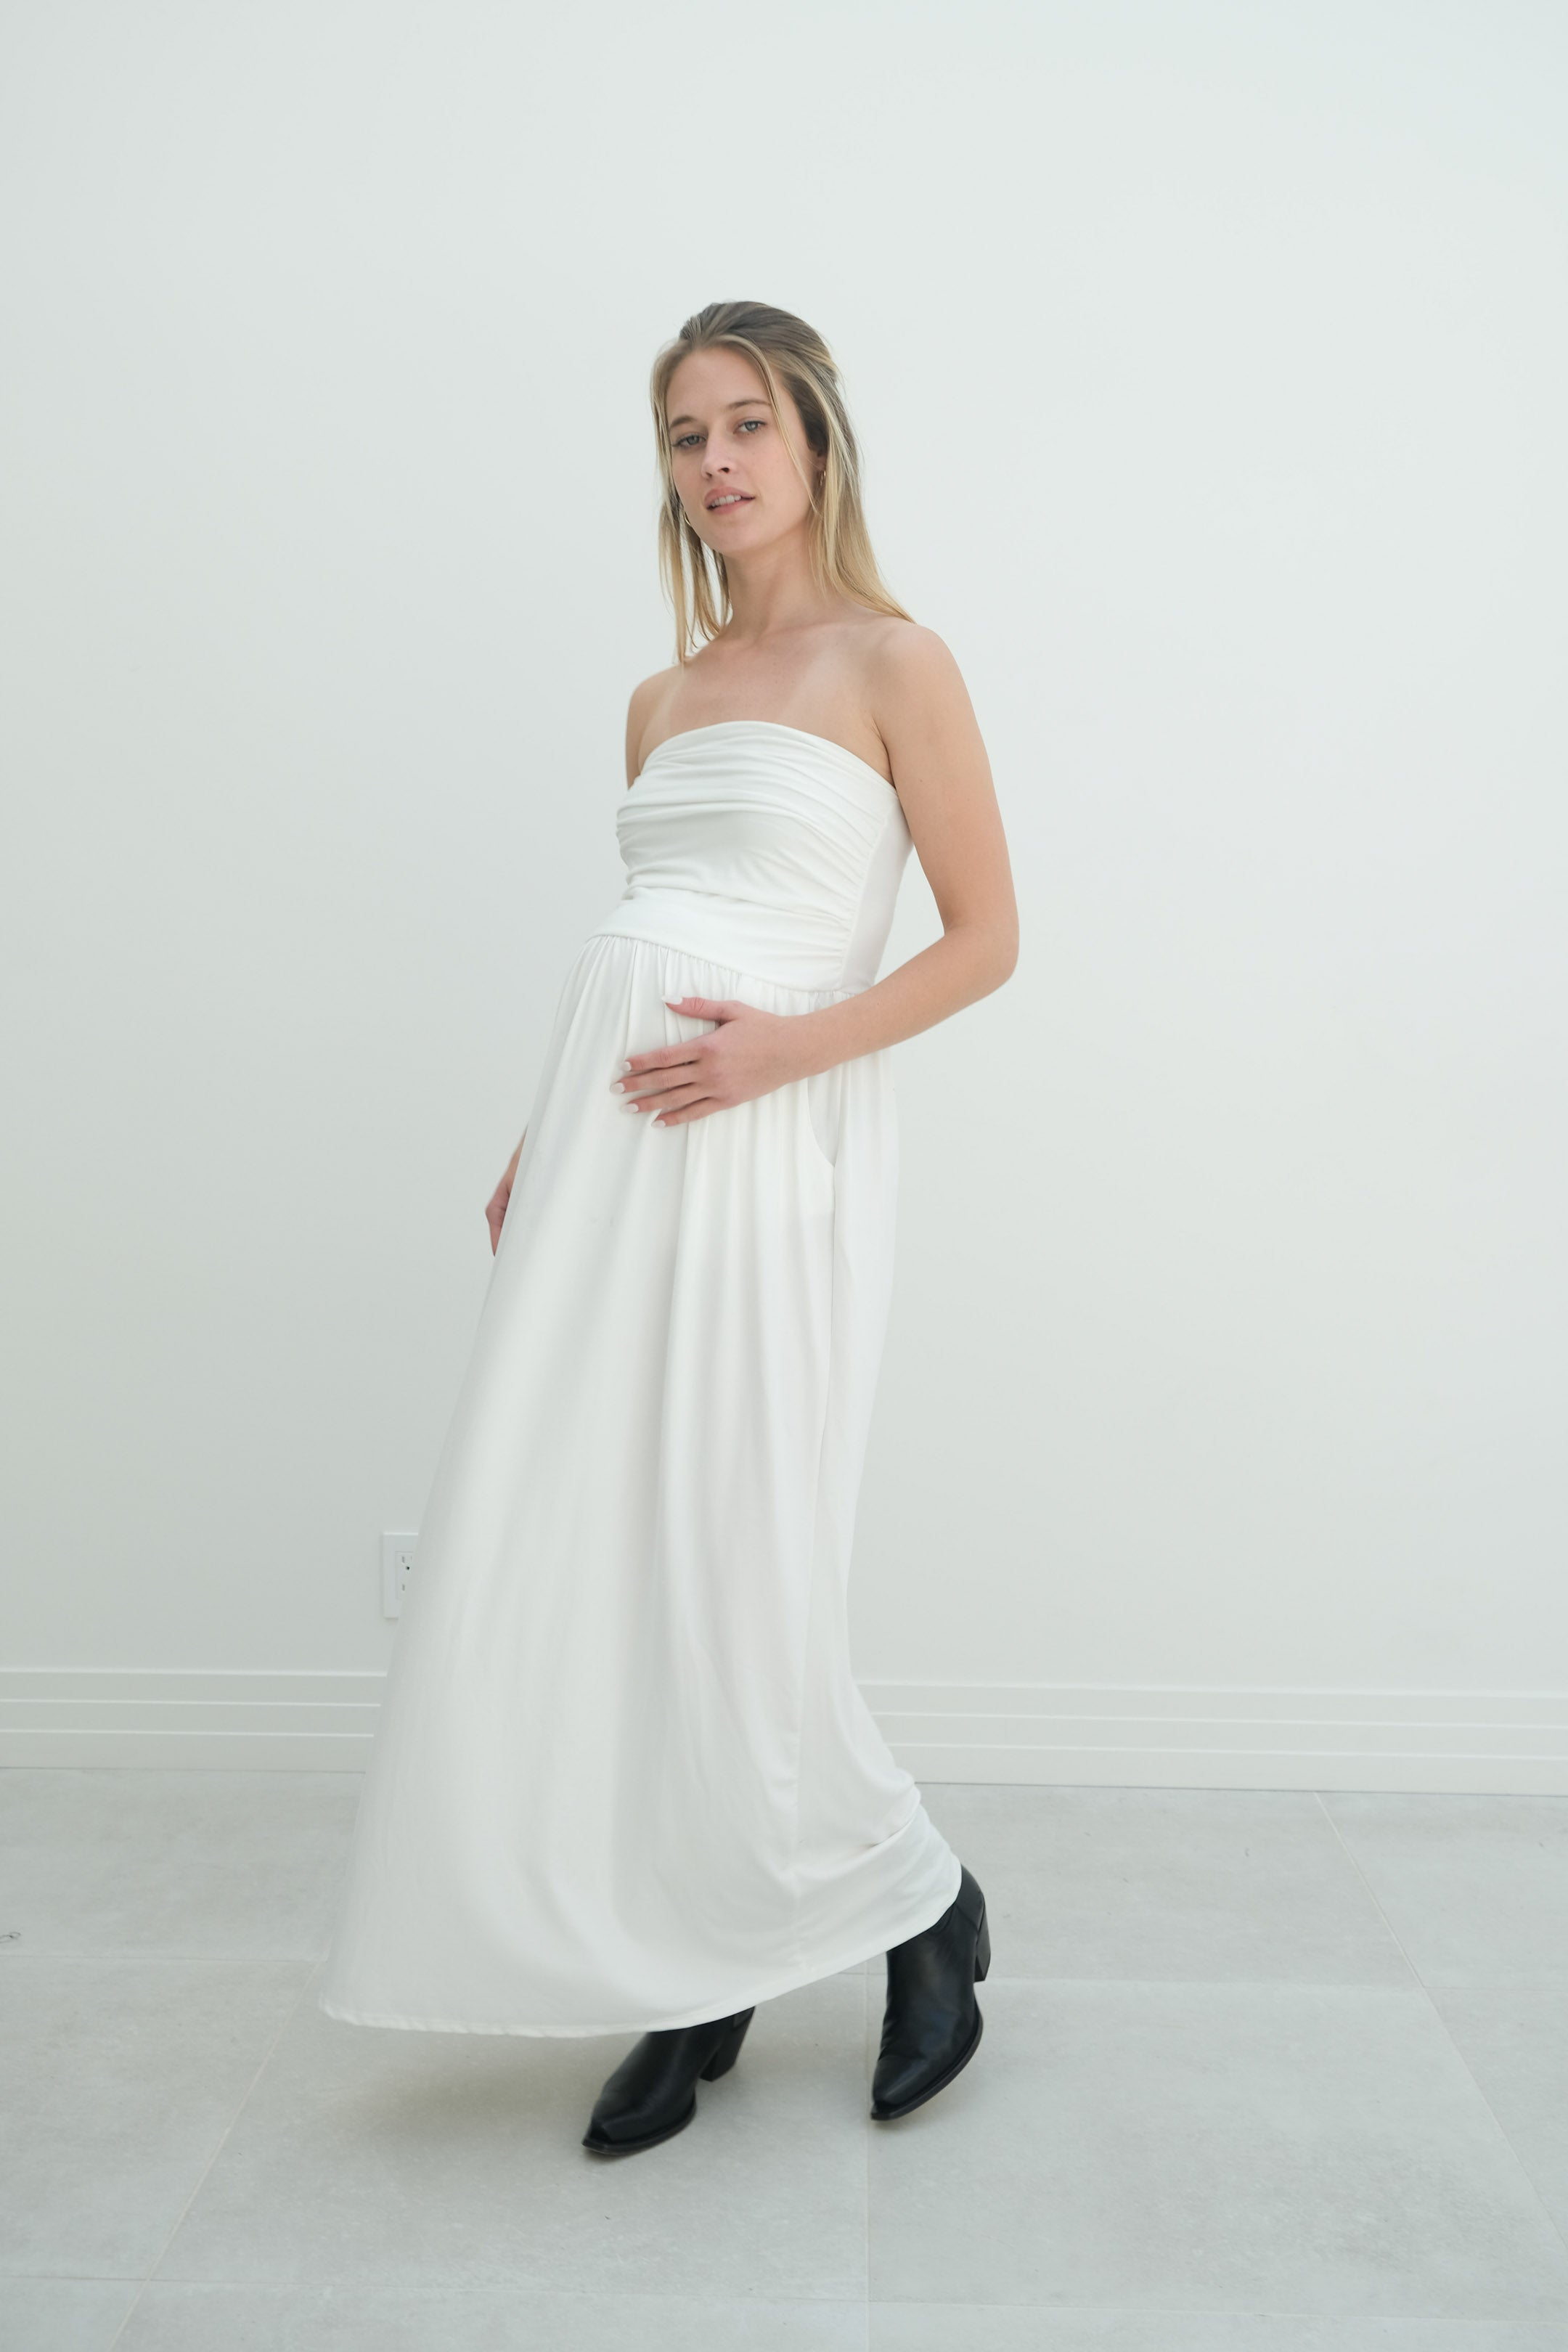 a pregnant woman wearing a white strapless casual maternity dress